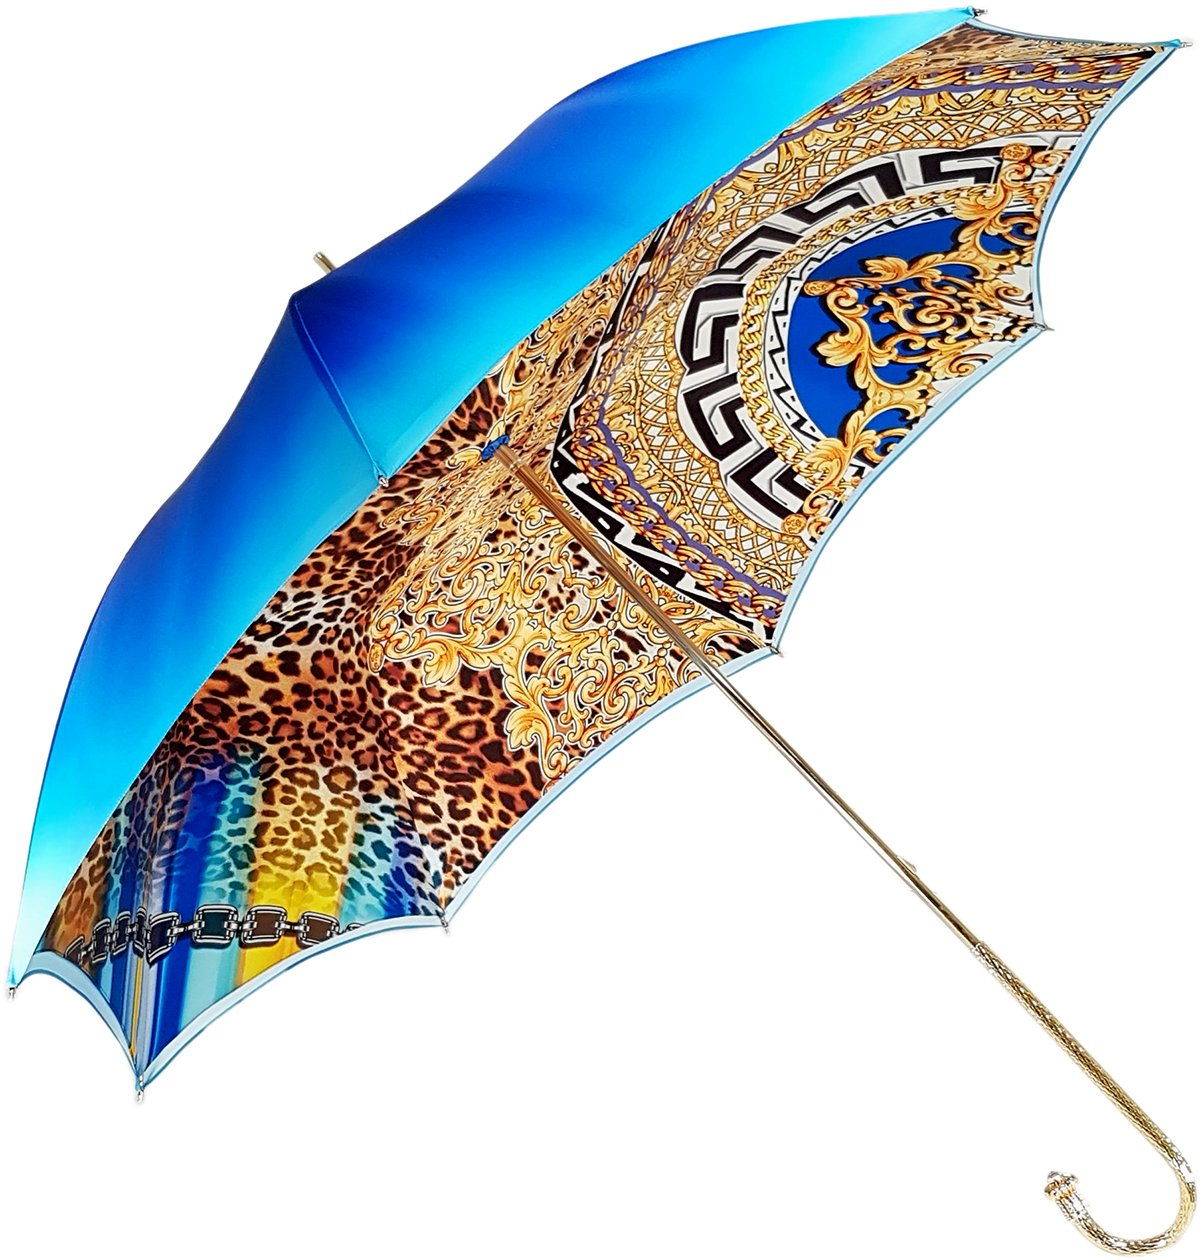 double canopy leopadized umbrella